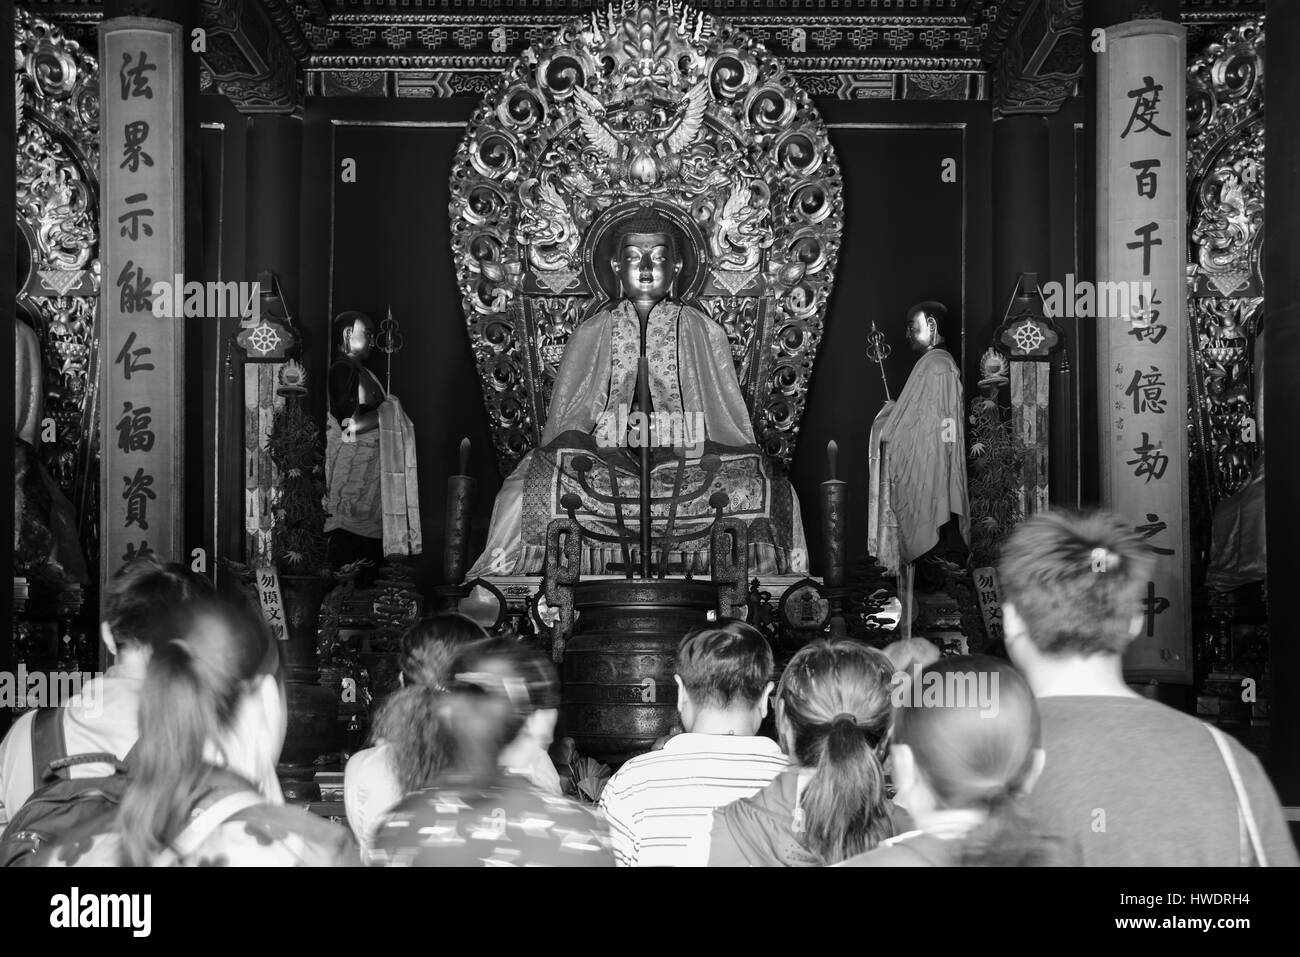 The buddha image color in black and white at the tibetan buddhist lama temple